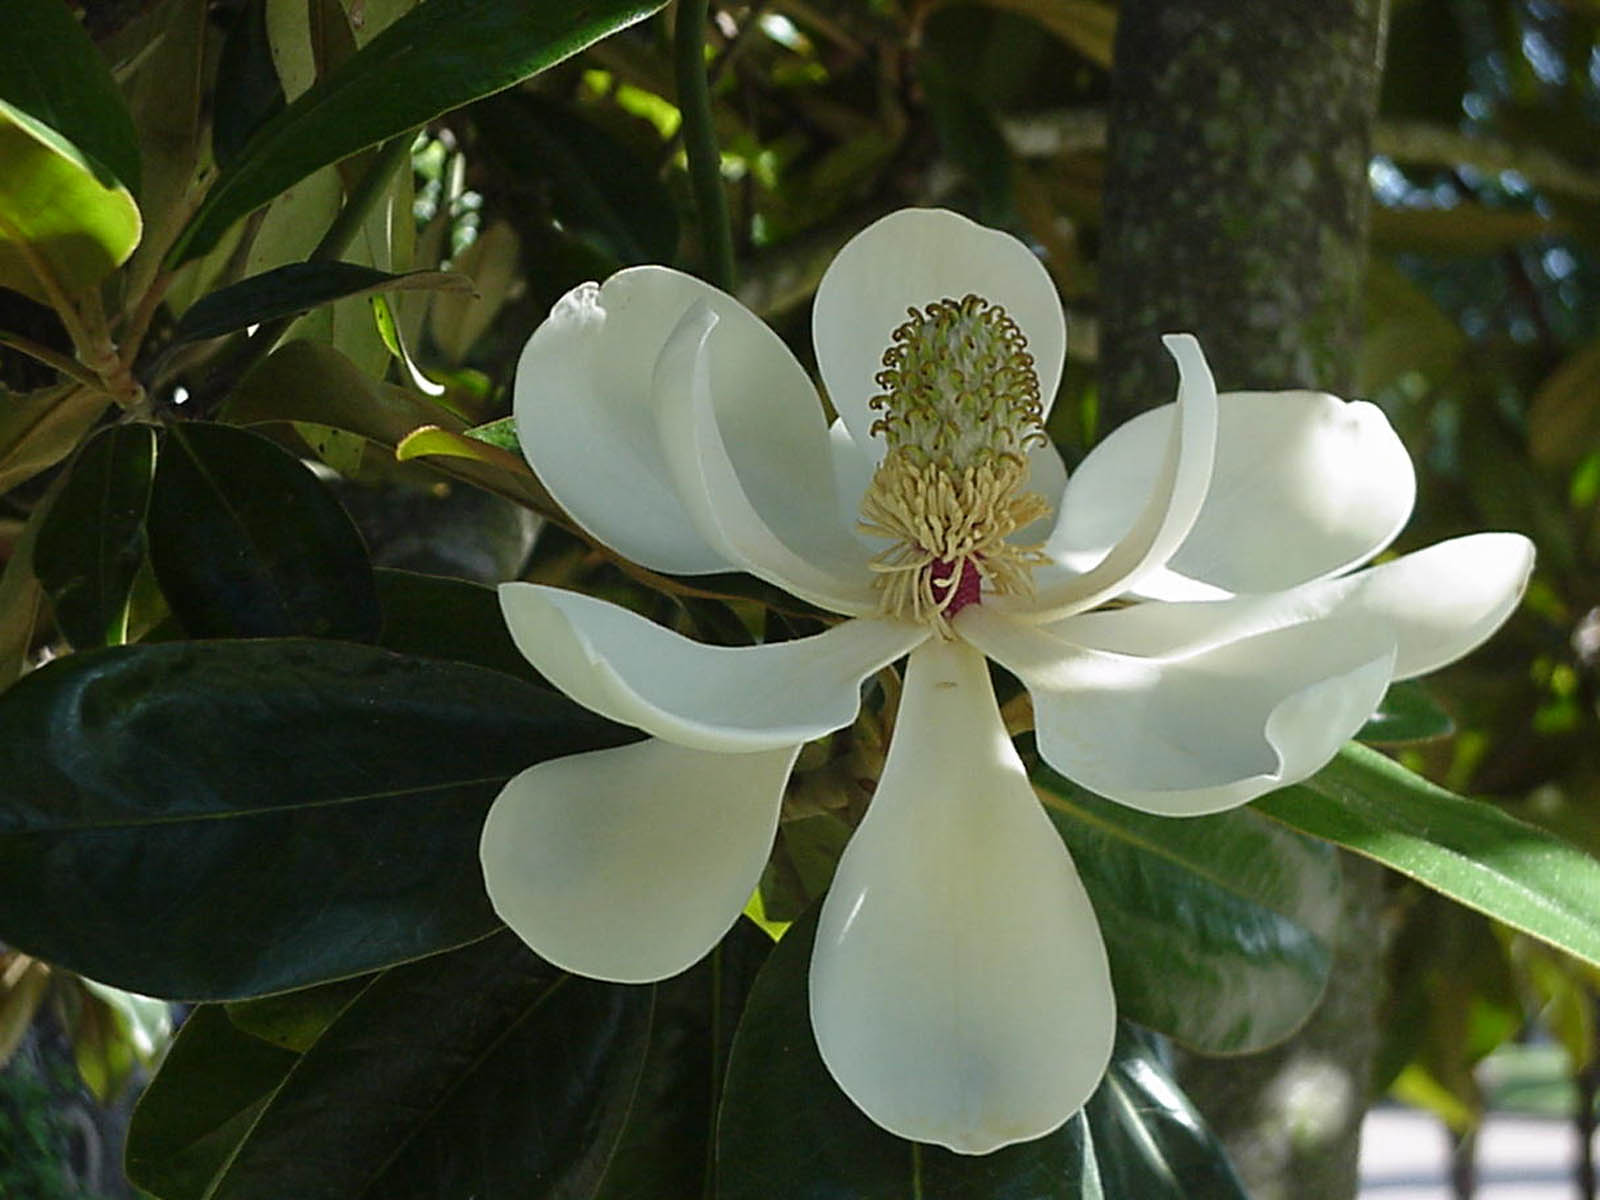 wallpapers magnolia blossom